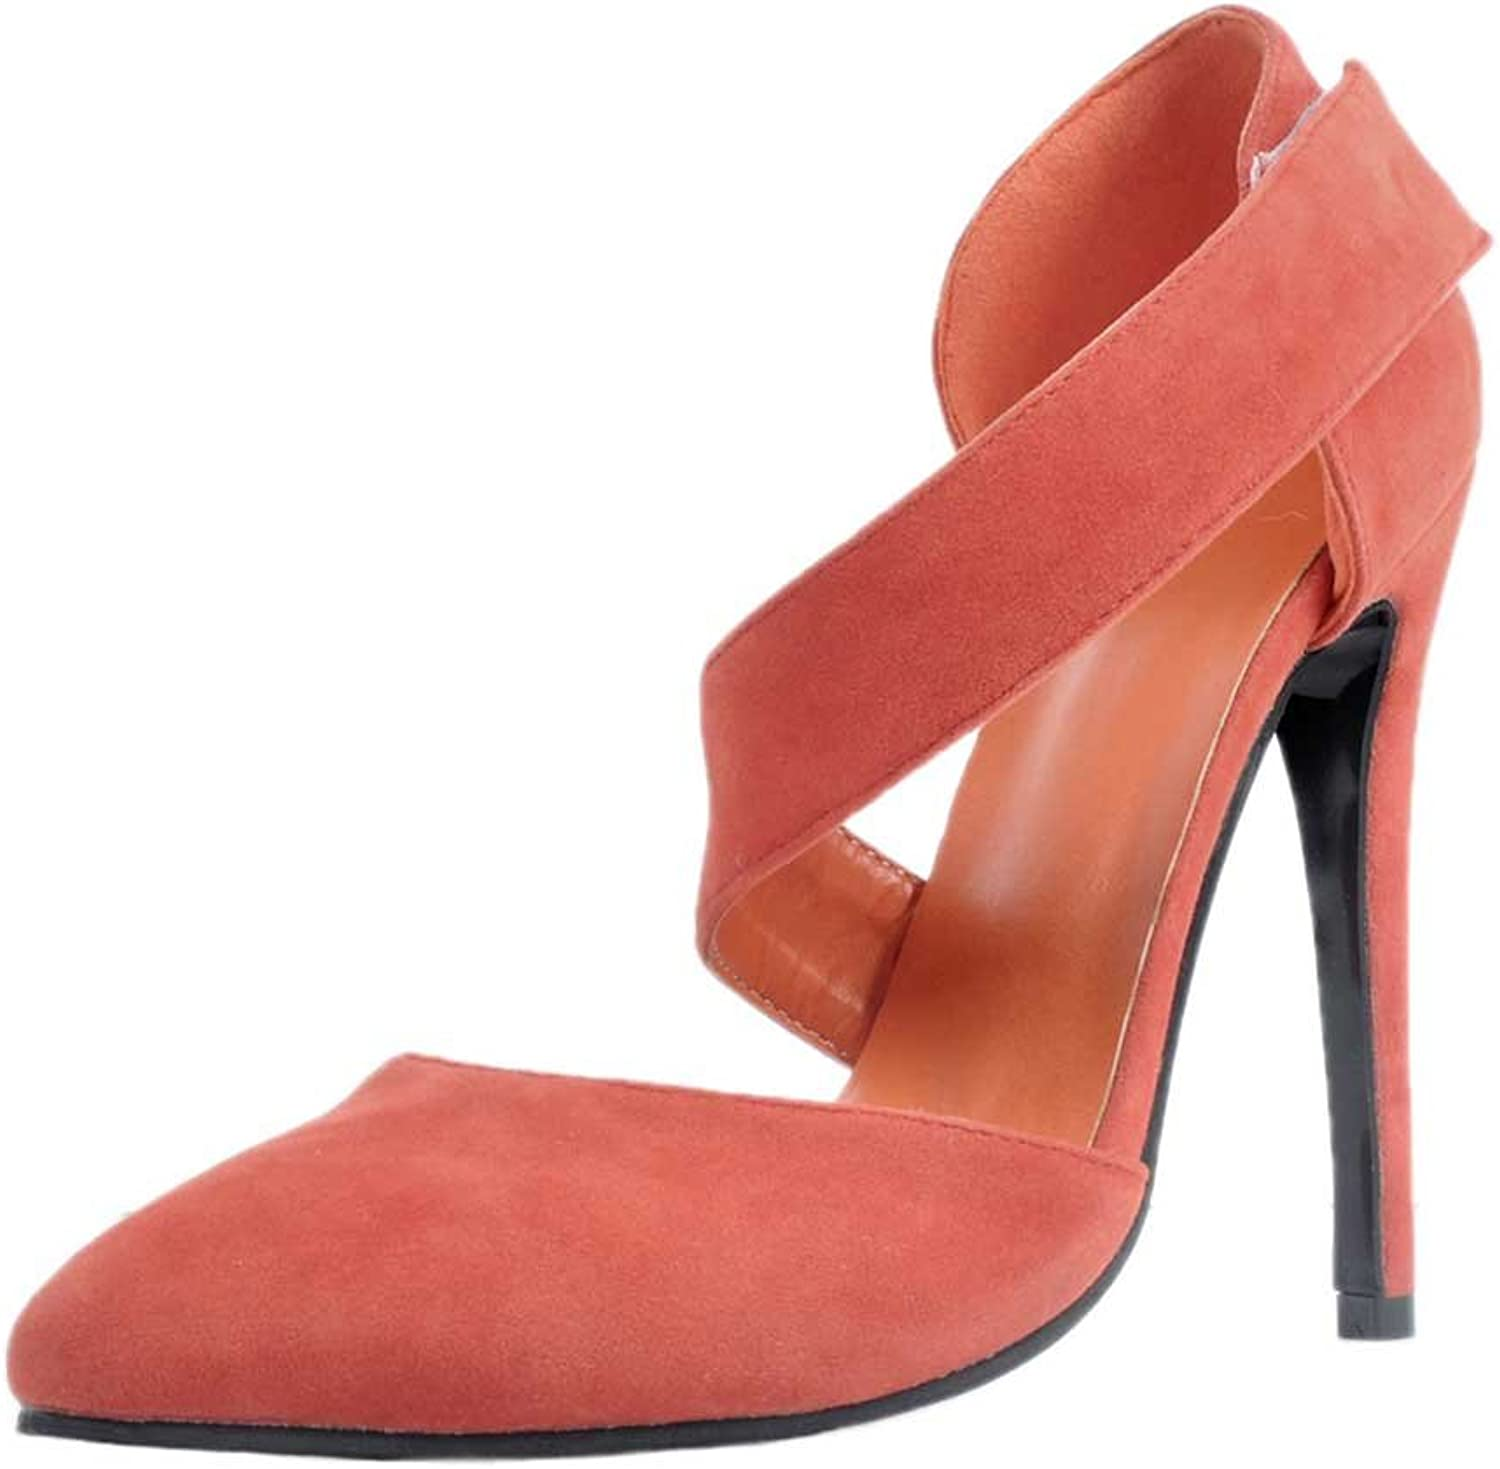 A-BUYBEA Women's Pointed Toe High Heel Cross-Strap Velcro Suede Sandal shoes